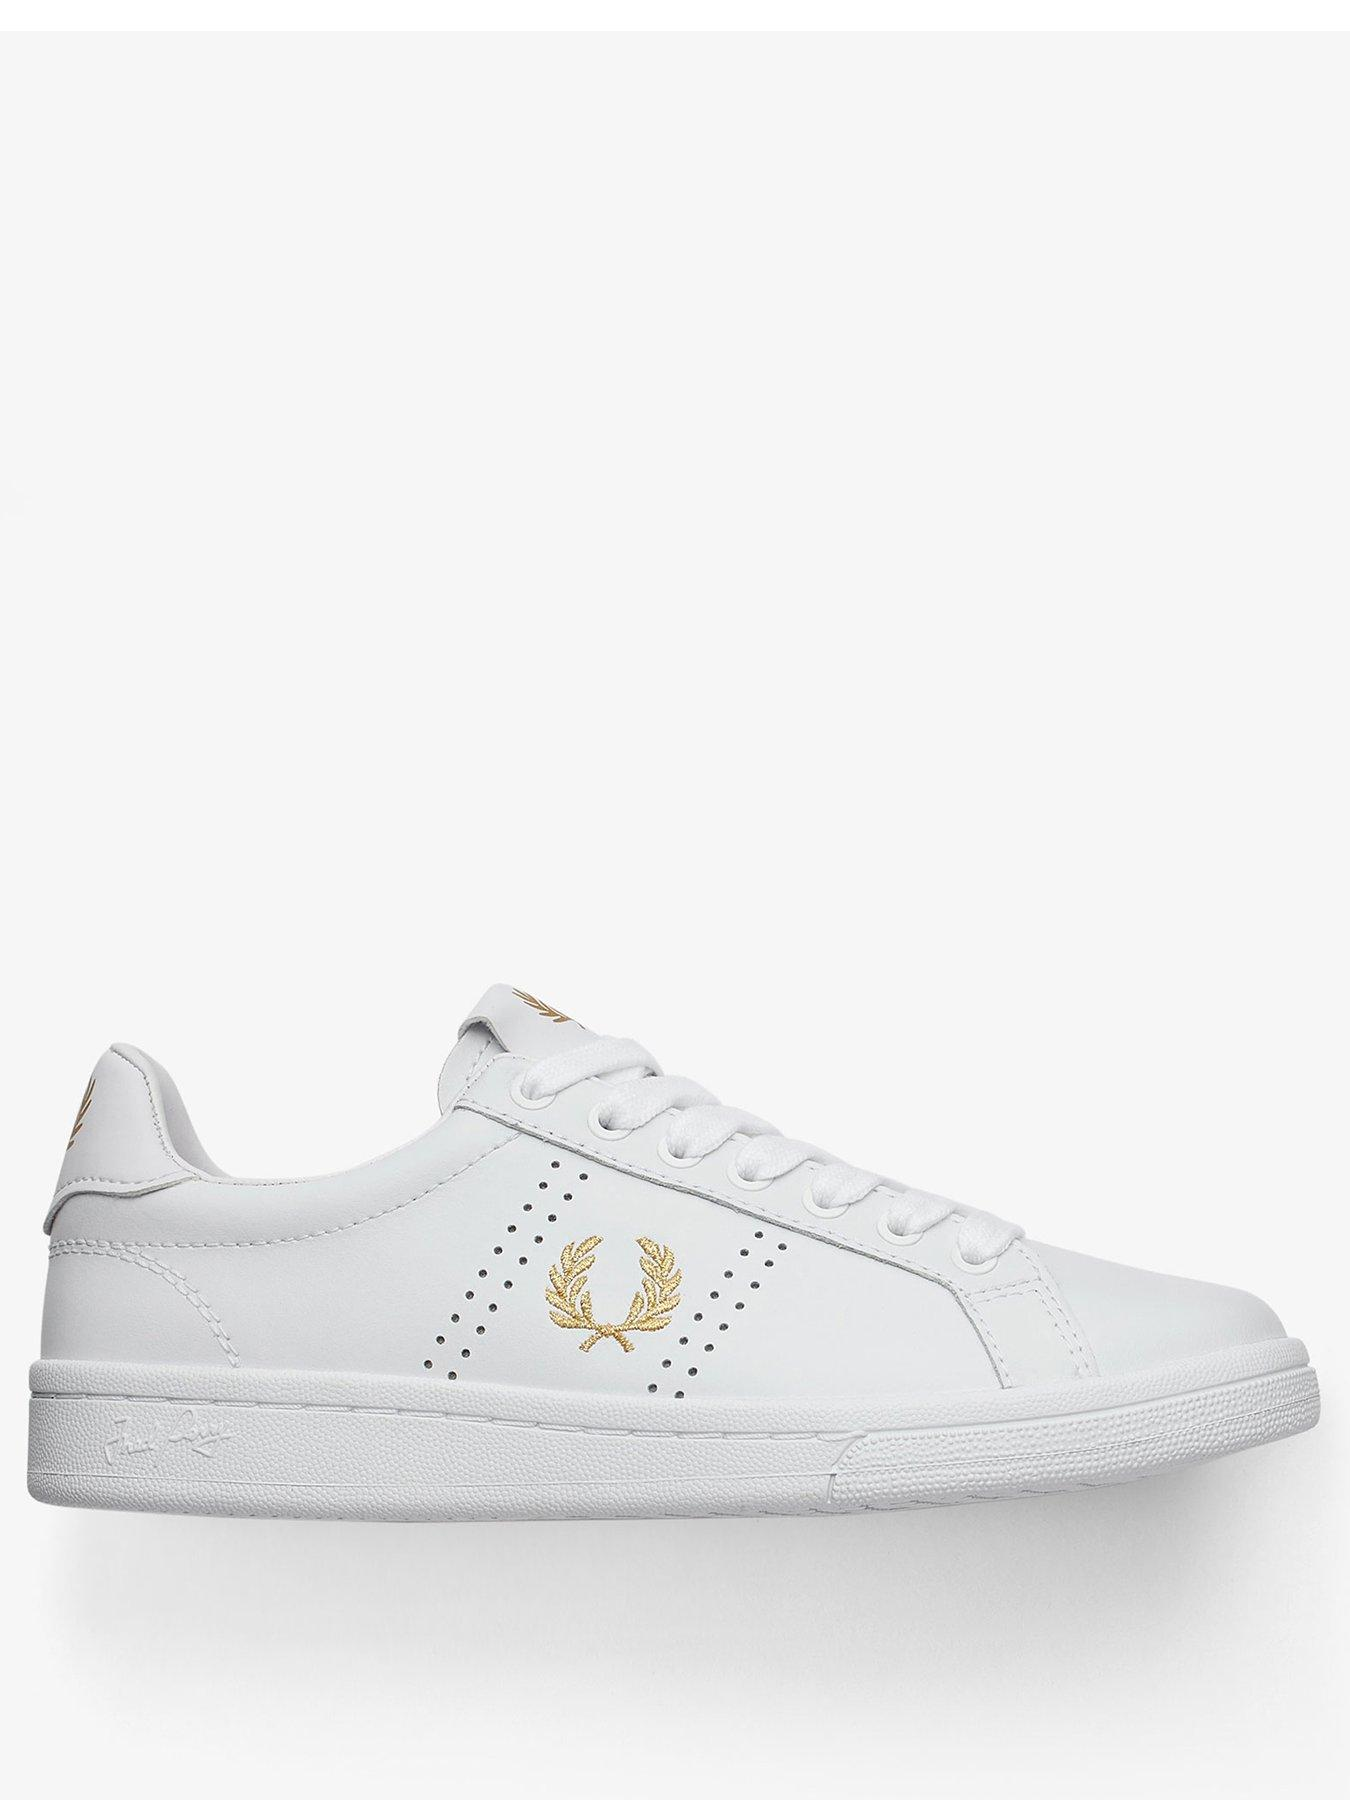 Fred perry | Trainers | Women | www